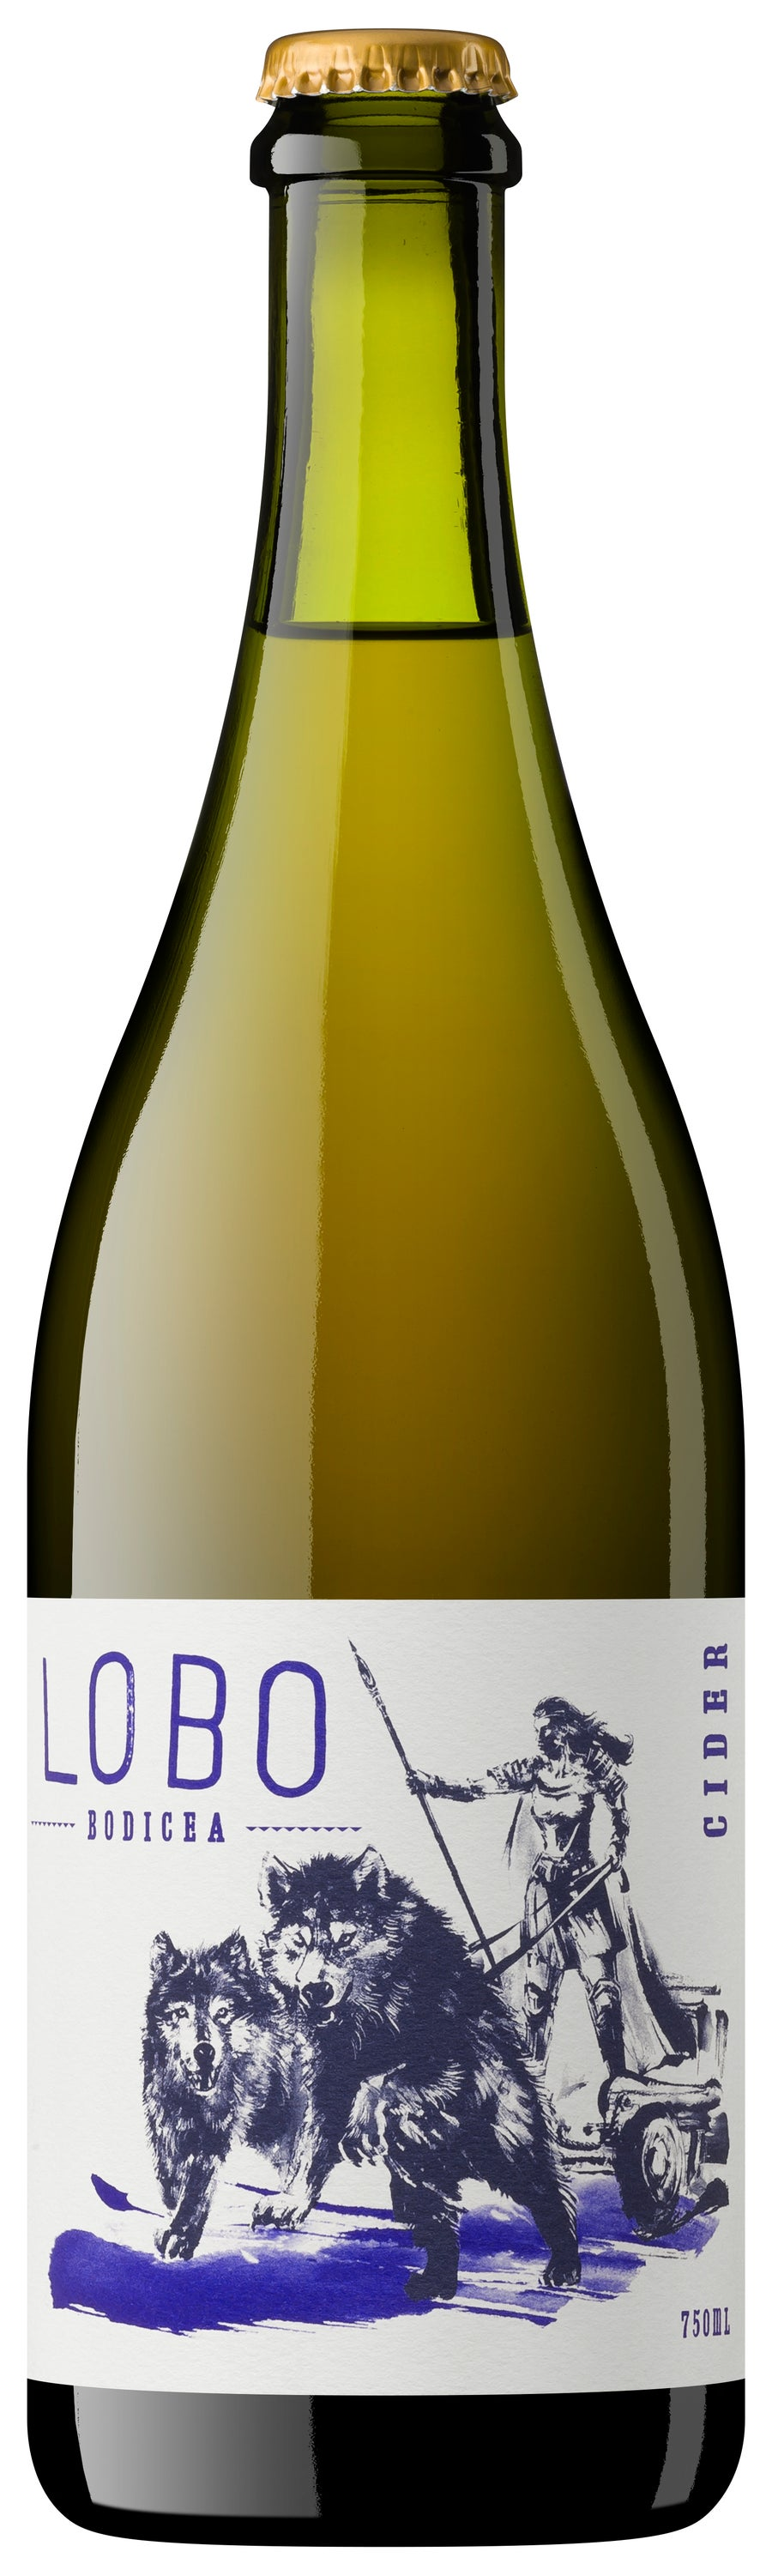 Image of LOBO Bodicea 750mL x 6